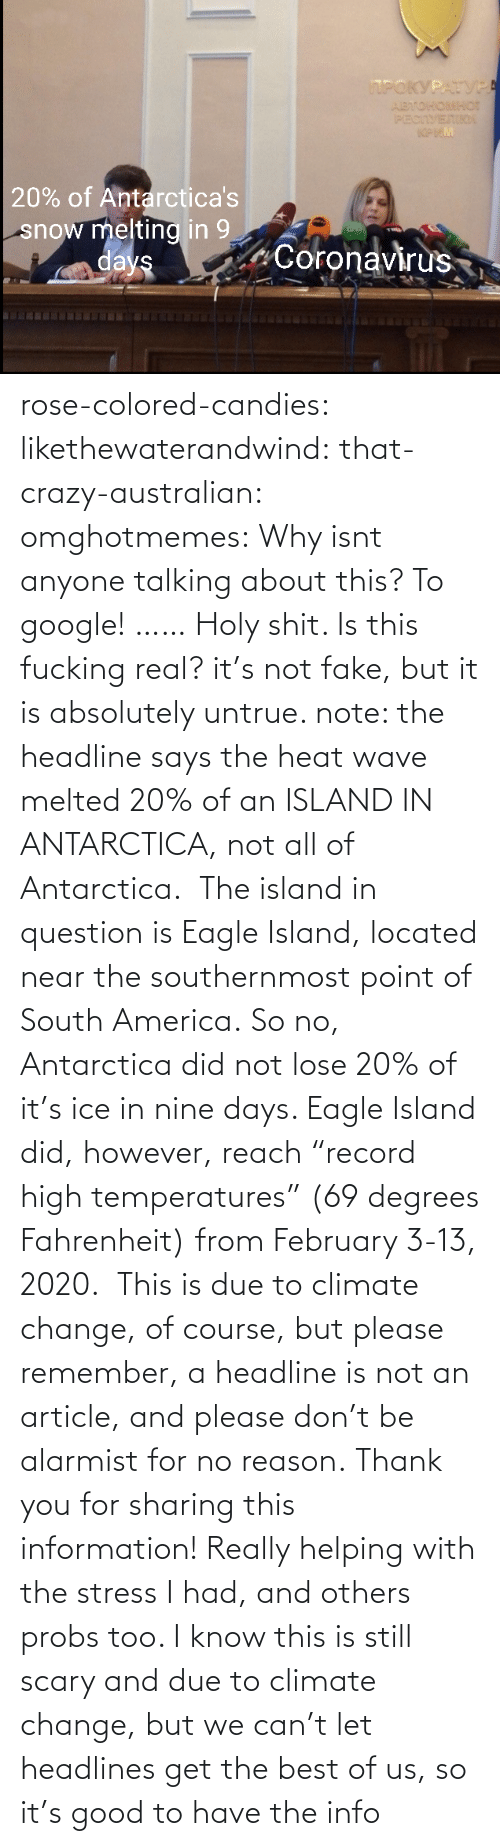 "however: rose-colored-candies: likethewaterandwind:   that-crazy-australian:  omghotmemes:  Why isnt anyone talking about this?   To google!  ……   Holy shit. Is this fucking real?   it's not fake, but it is absolutely untrue. note: the headline says the heat wave melted 20% of an ISLAND IN ANTARCTICA, not all of Antarctica.  The island in question is Eagle Island, located near the southernmost point of South America. So no, Antarctica did not lose 20% of it's ice in nine days. Eagle Island did, however, reach ""record high temperatures"" (69 degrees Fahrenheit) from February 3-13, 2020.  This is due to climate change, of course, but please remember, a headline is not an article, and please don't be alarmist for no reason.    Thank you for sharing this information! Really helping with the stress I had, and others probs too. I know this is still scary and due to climate change, but we can't let headlines get the best of us, so it's good to have the info"